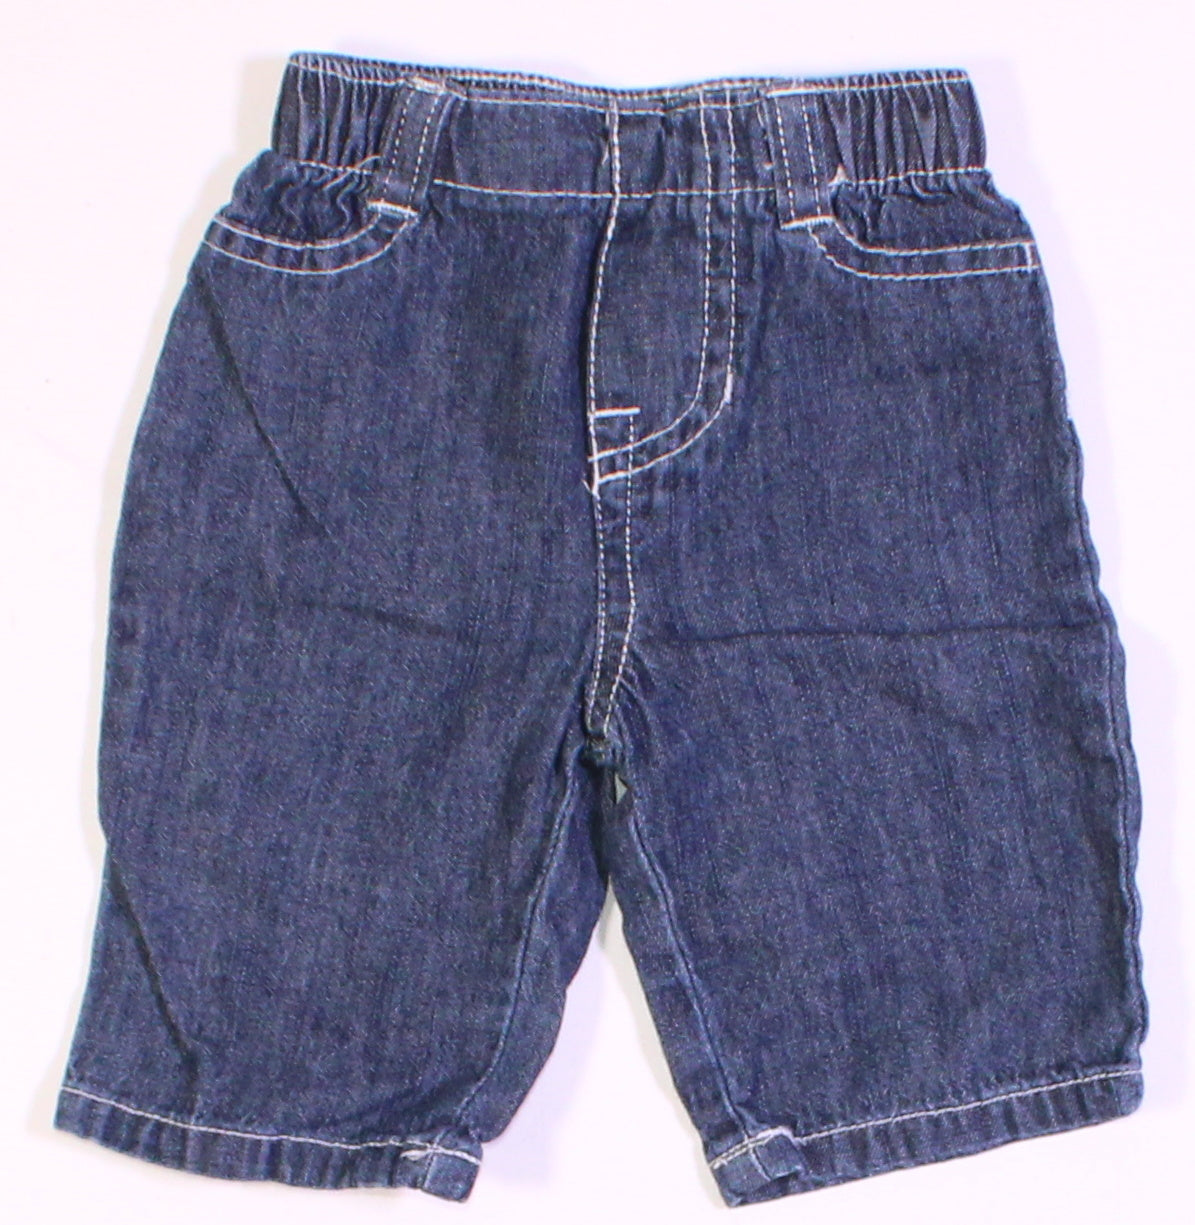 CIRCO HEART POCKET JEANS NB VGUC